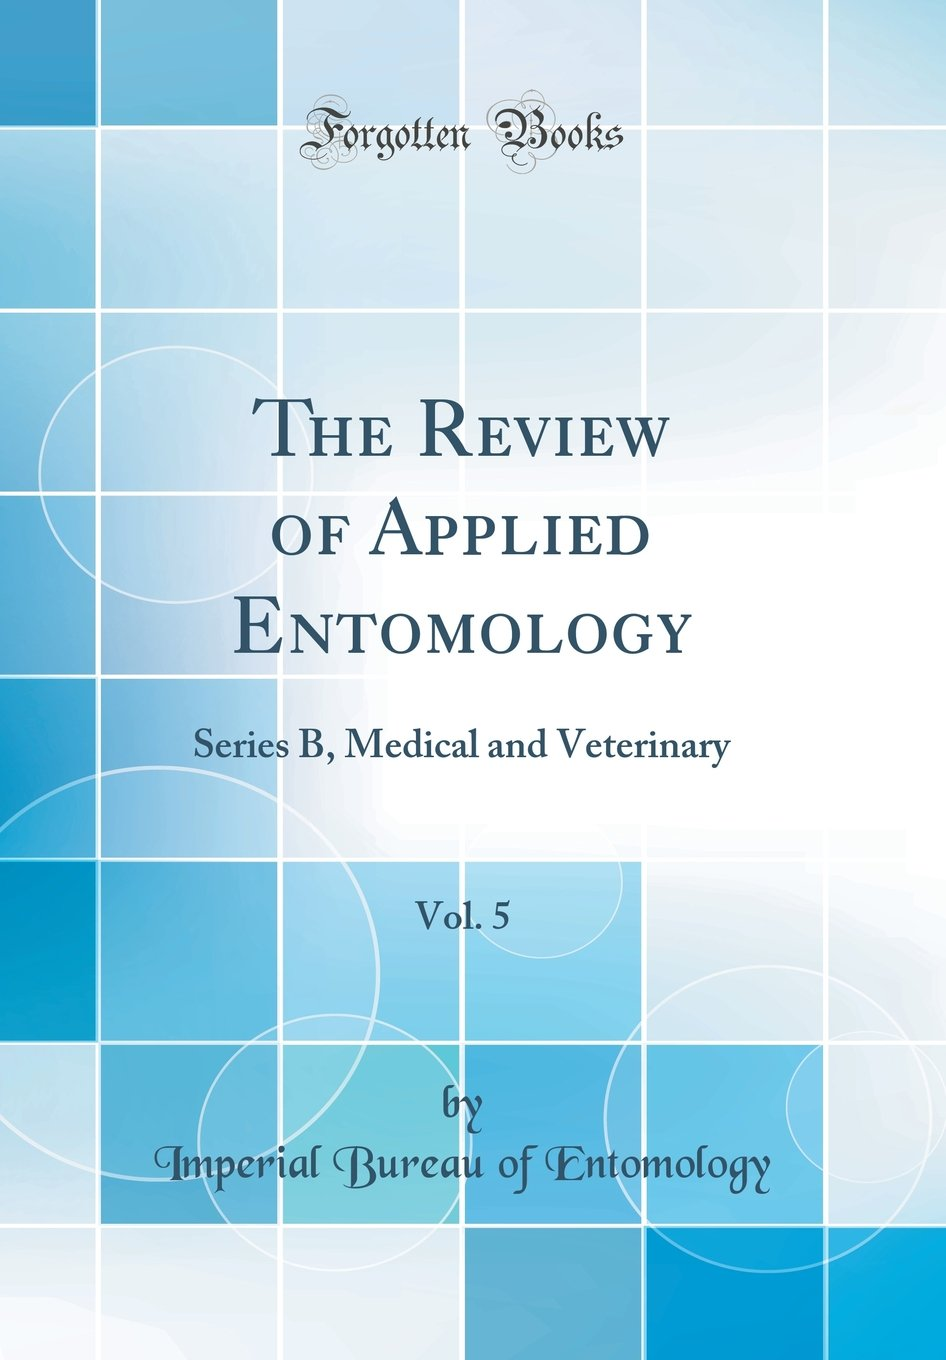 The Review of Applied Entomology, Vol. 5: Series B, Medical and Veterinary (Classic Reprint) PDF